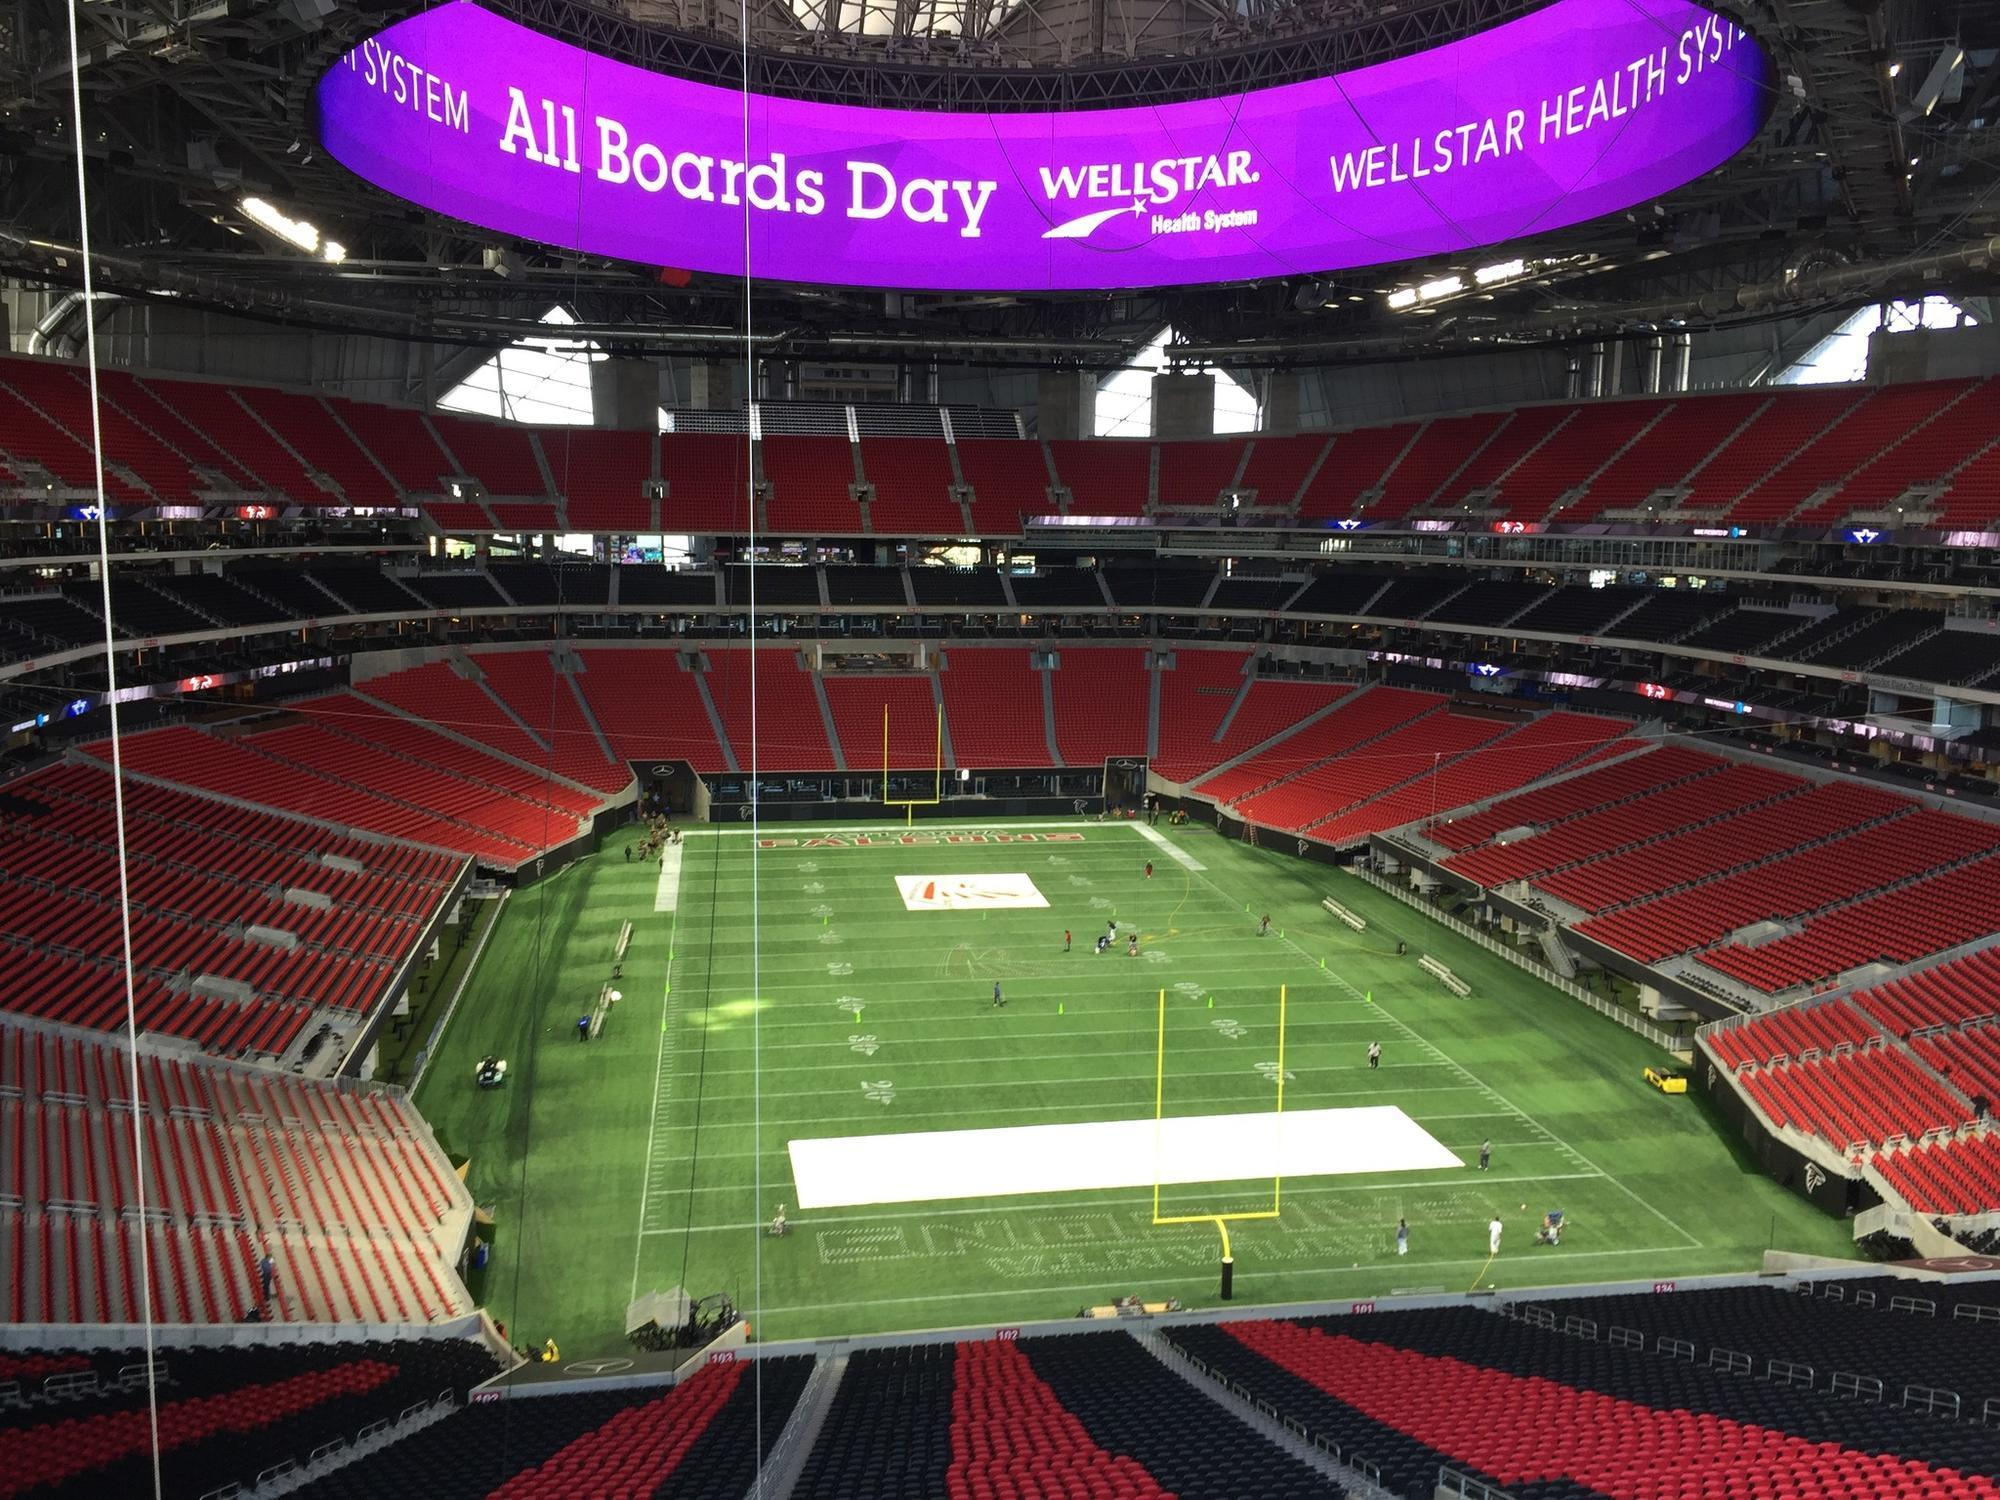 Atlanta S New Mercedes Benz Stadium Caters To All Daily